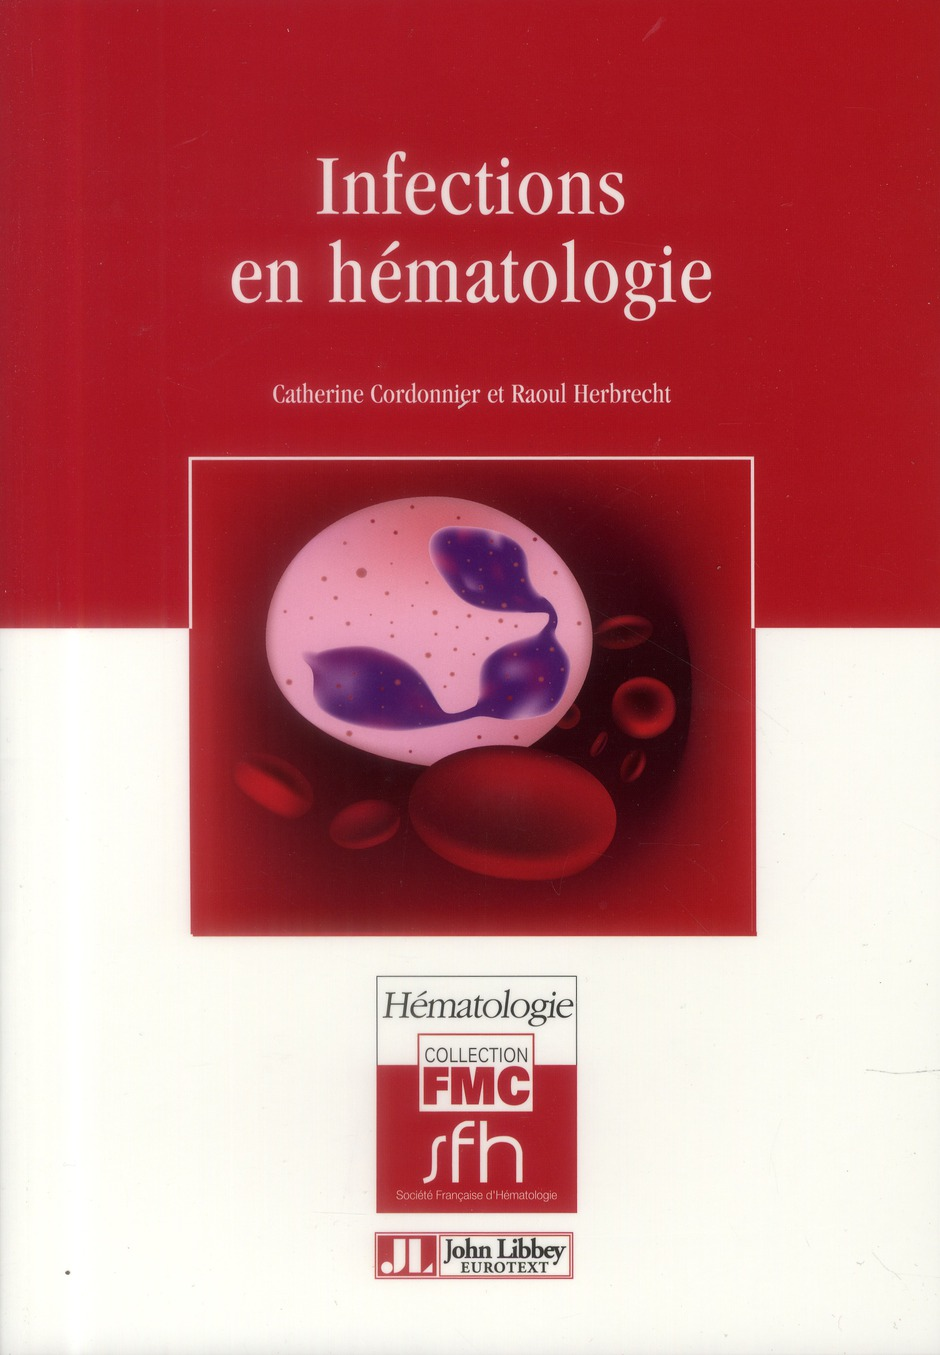 INFECTIONS EN HEMATOLOGIE